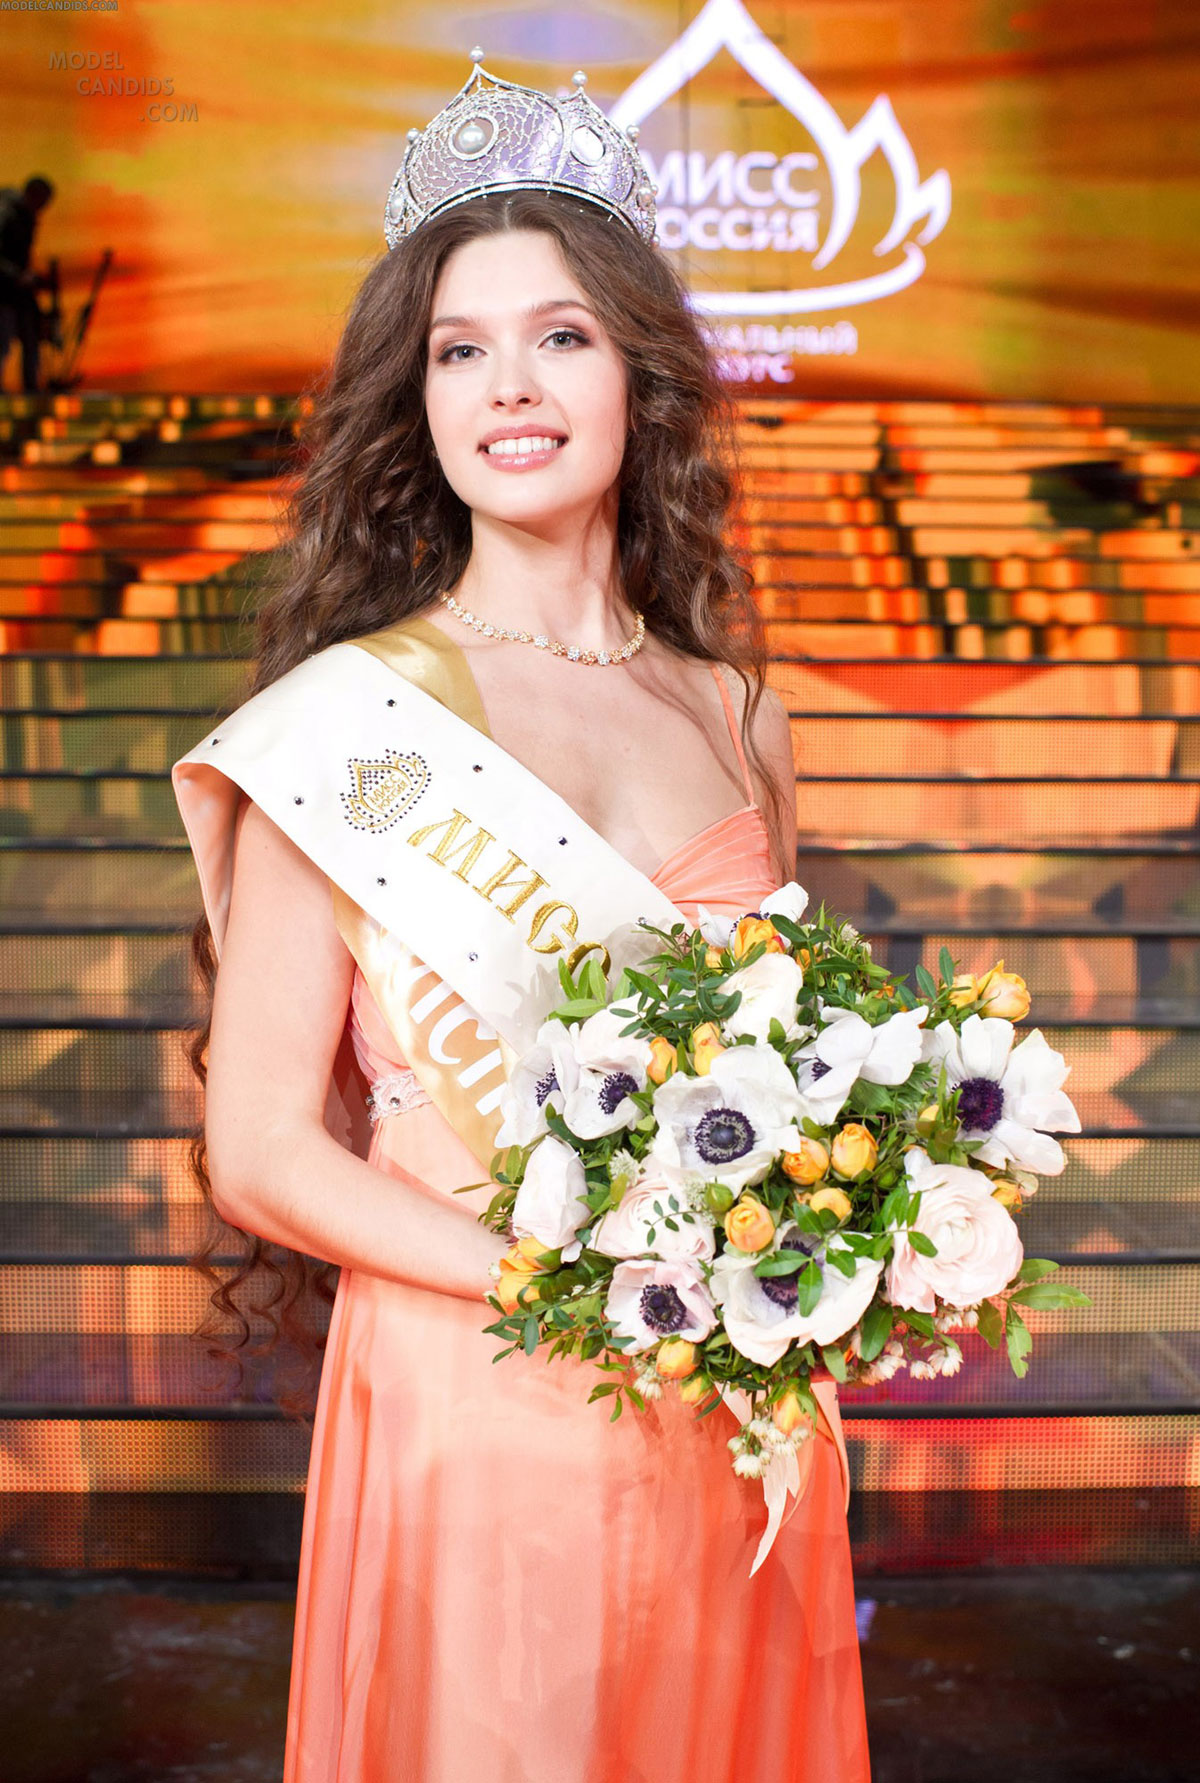 russian _nudist _bare_pageant  Elizaveta Golovanova Miss Russia Pageant In Moscow HawtCelebs